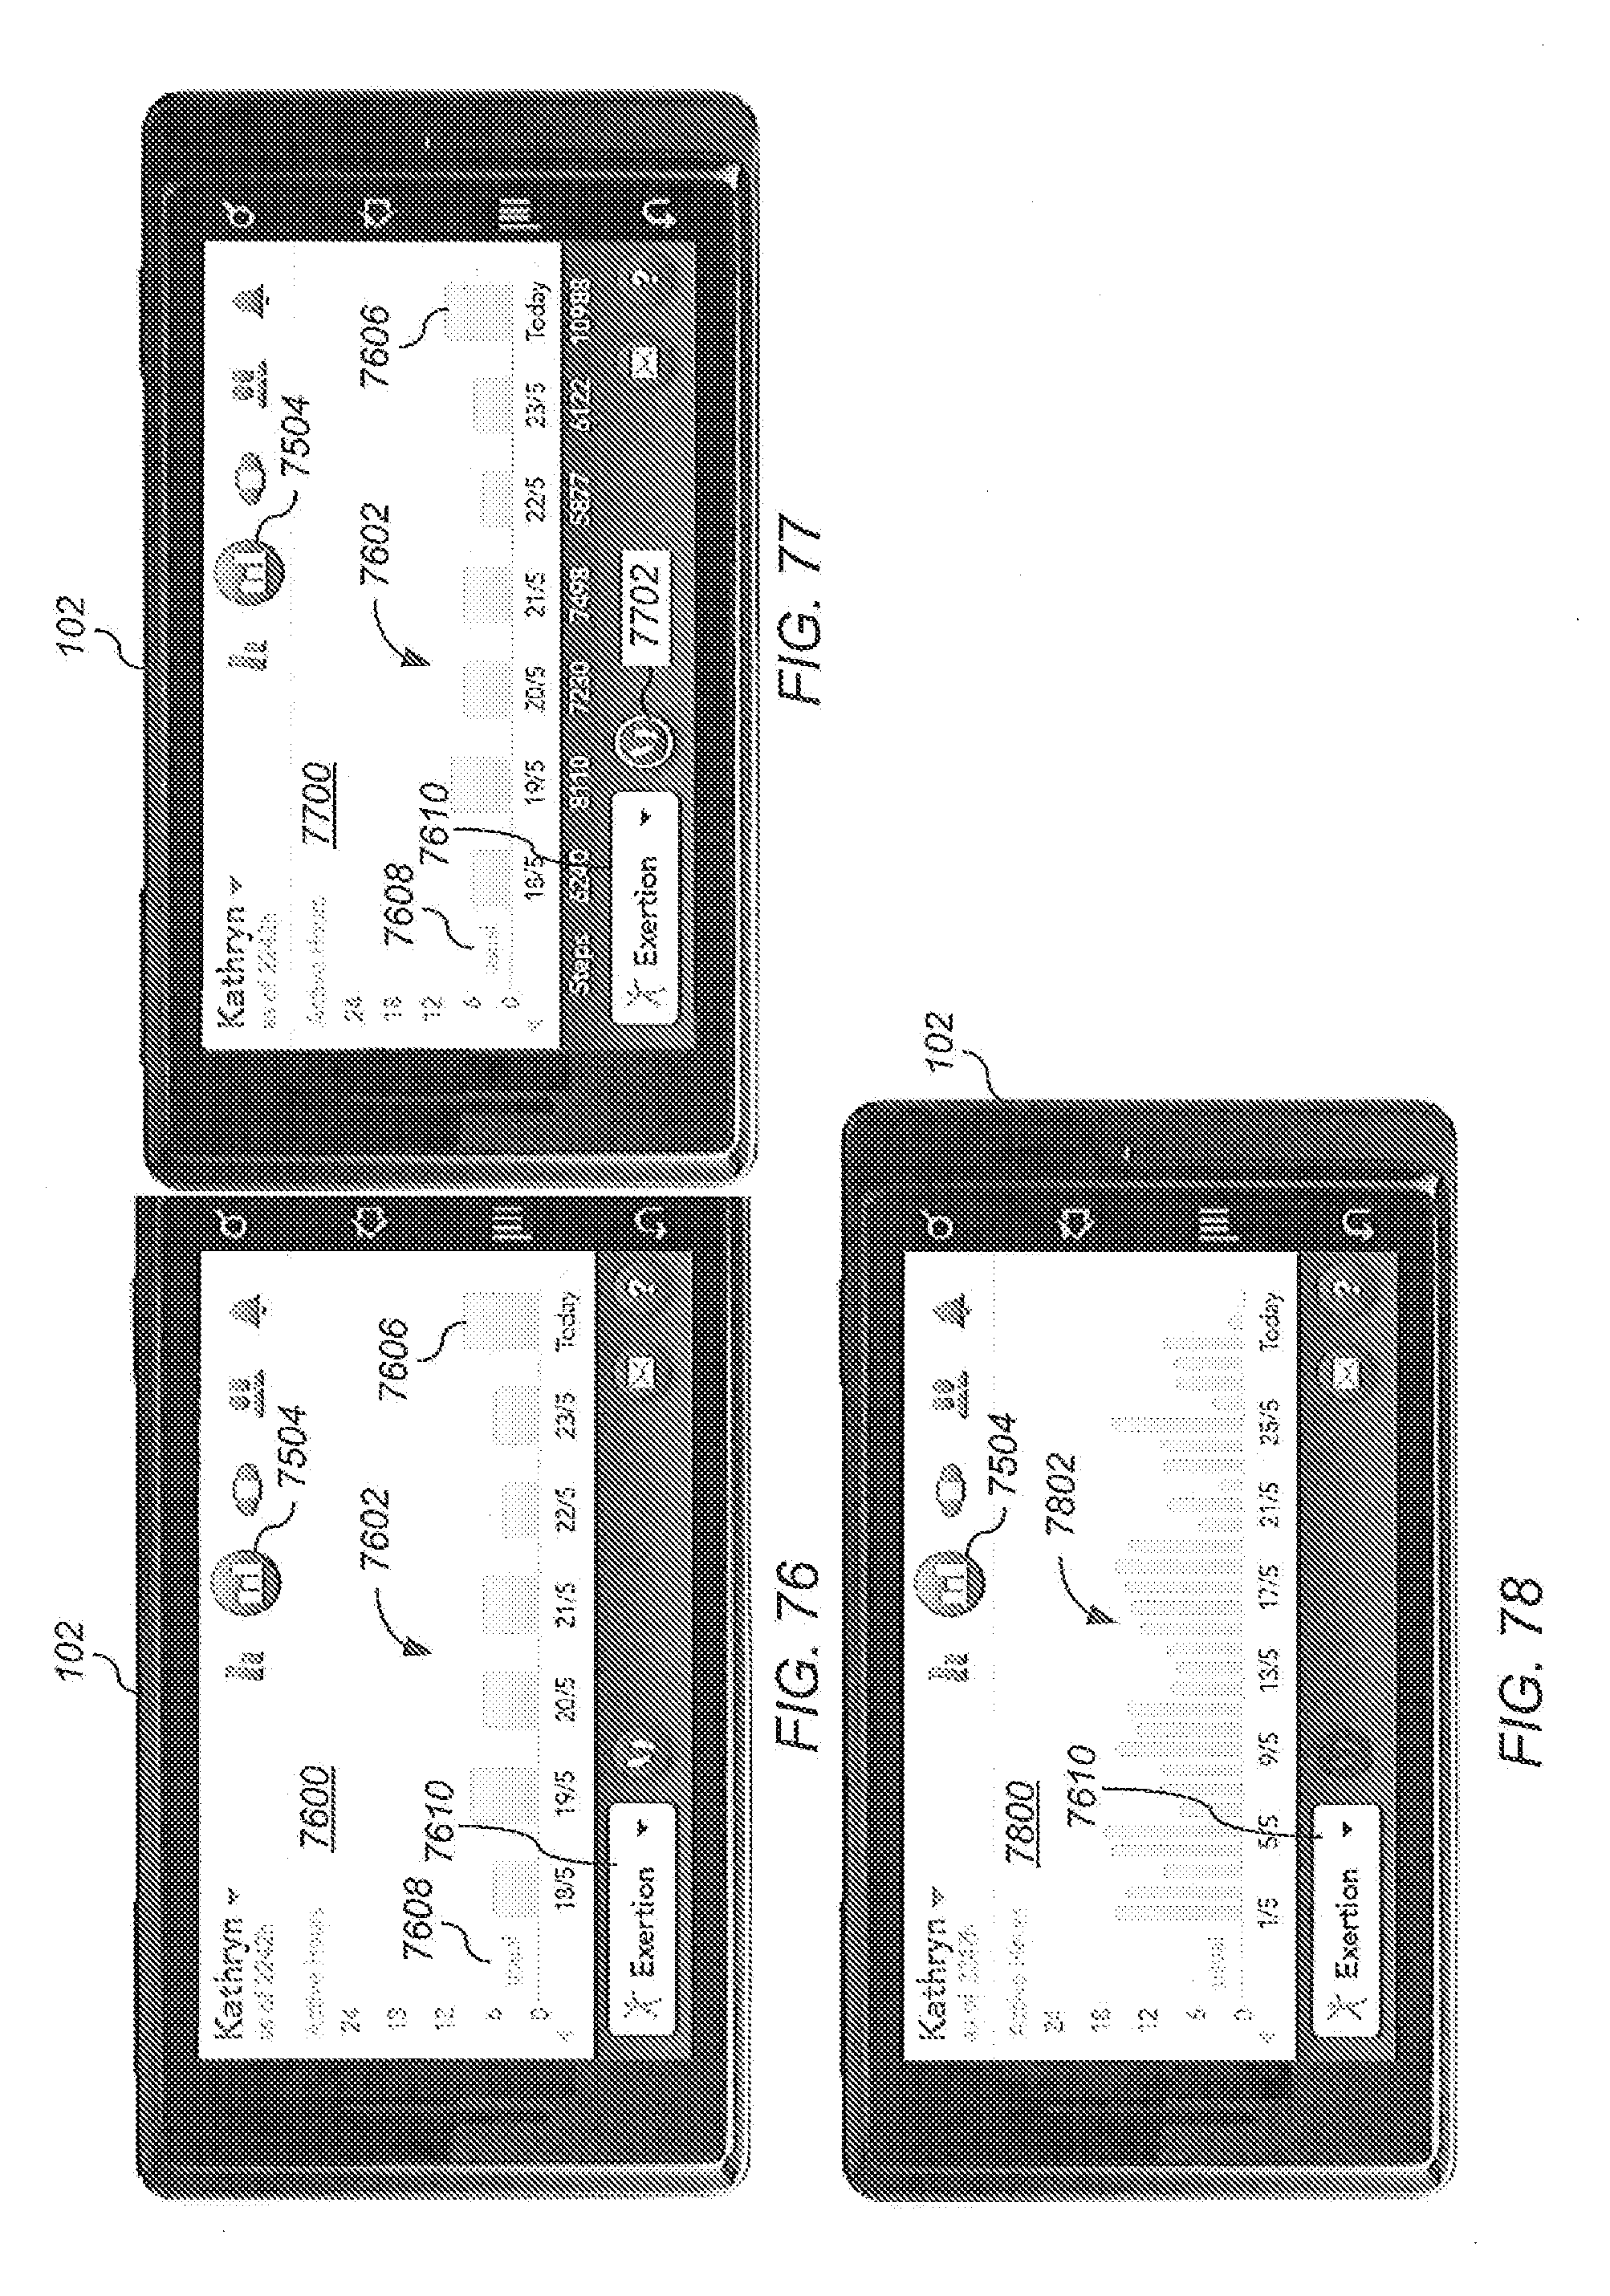 Patent Us20130117696 Apparatus System And Method For Managing 9118 Converter Wiring Diagram Magneto Drawing